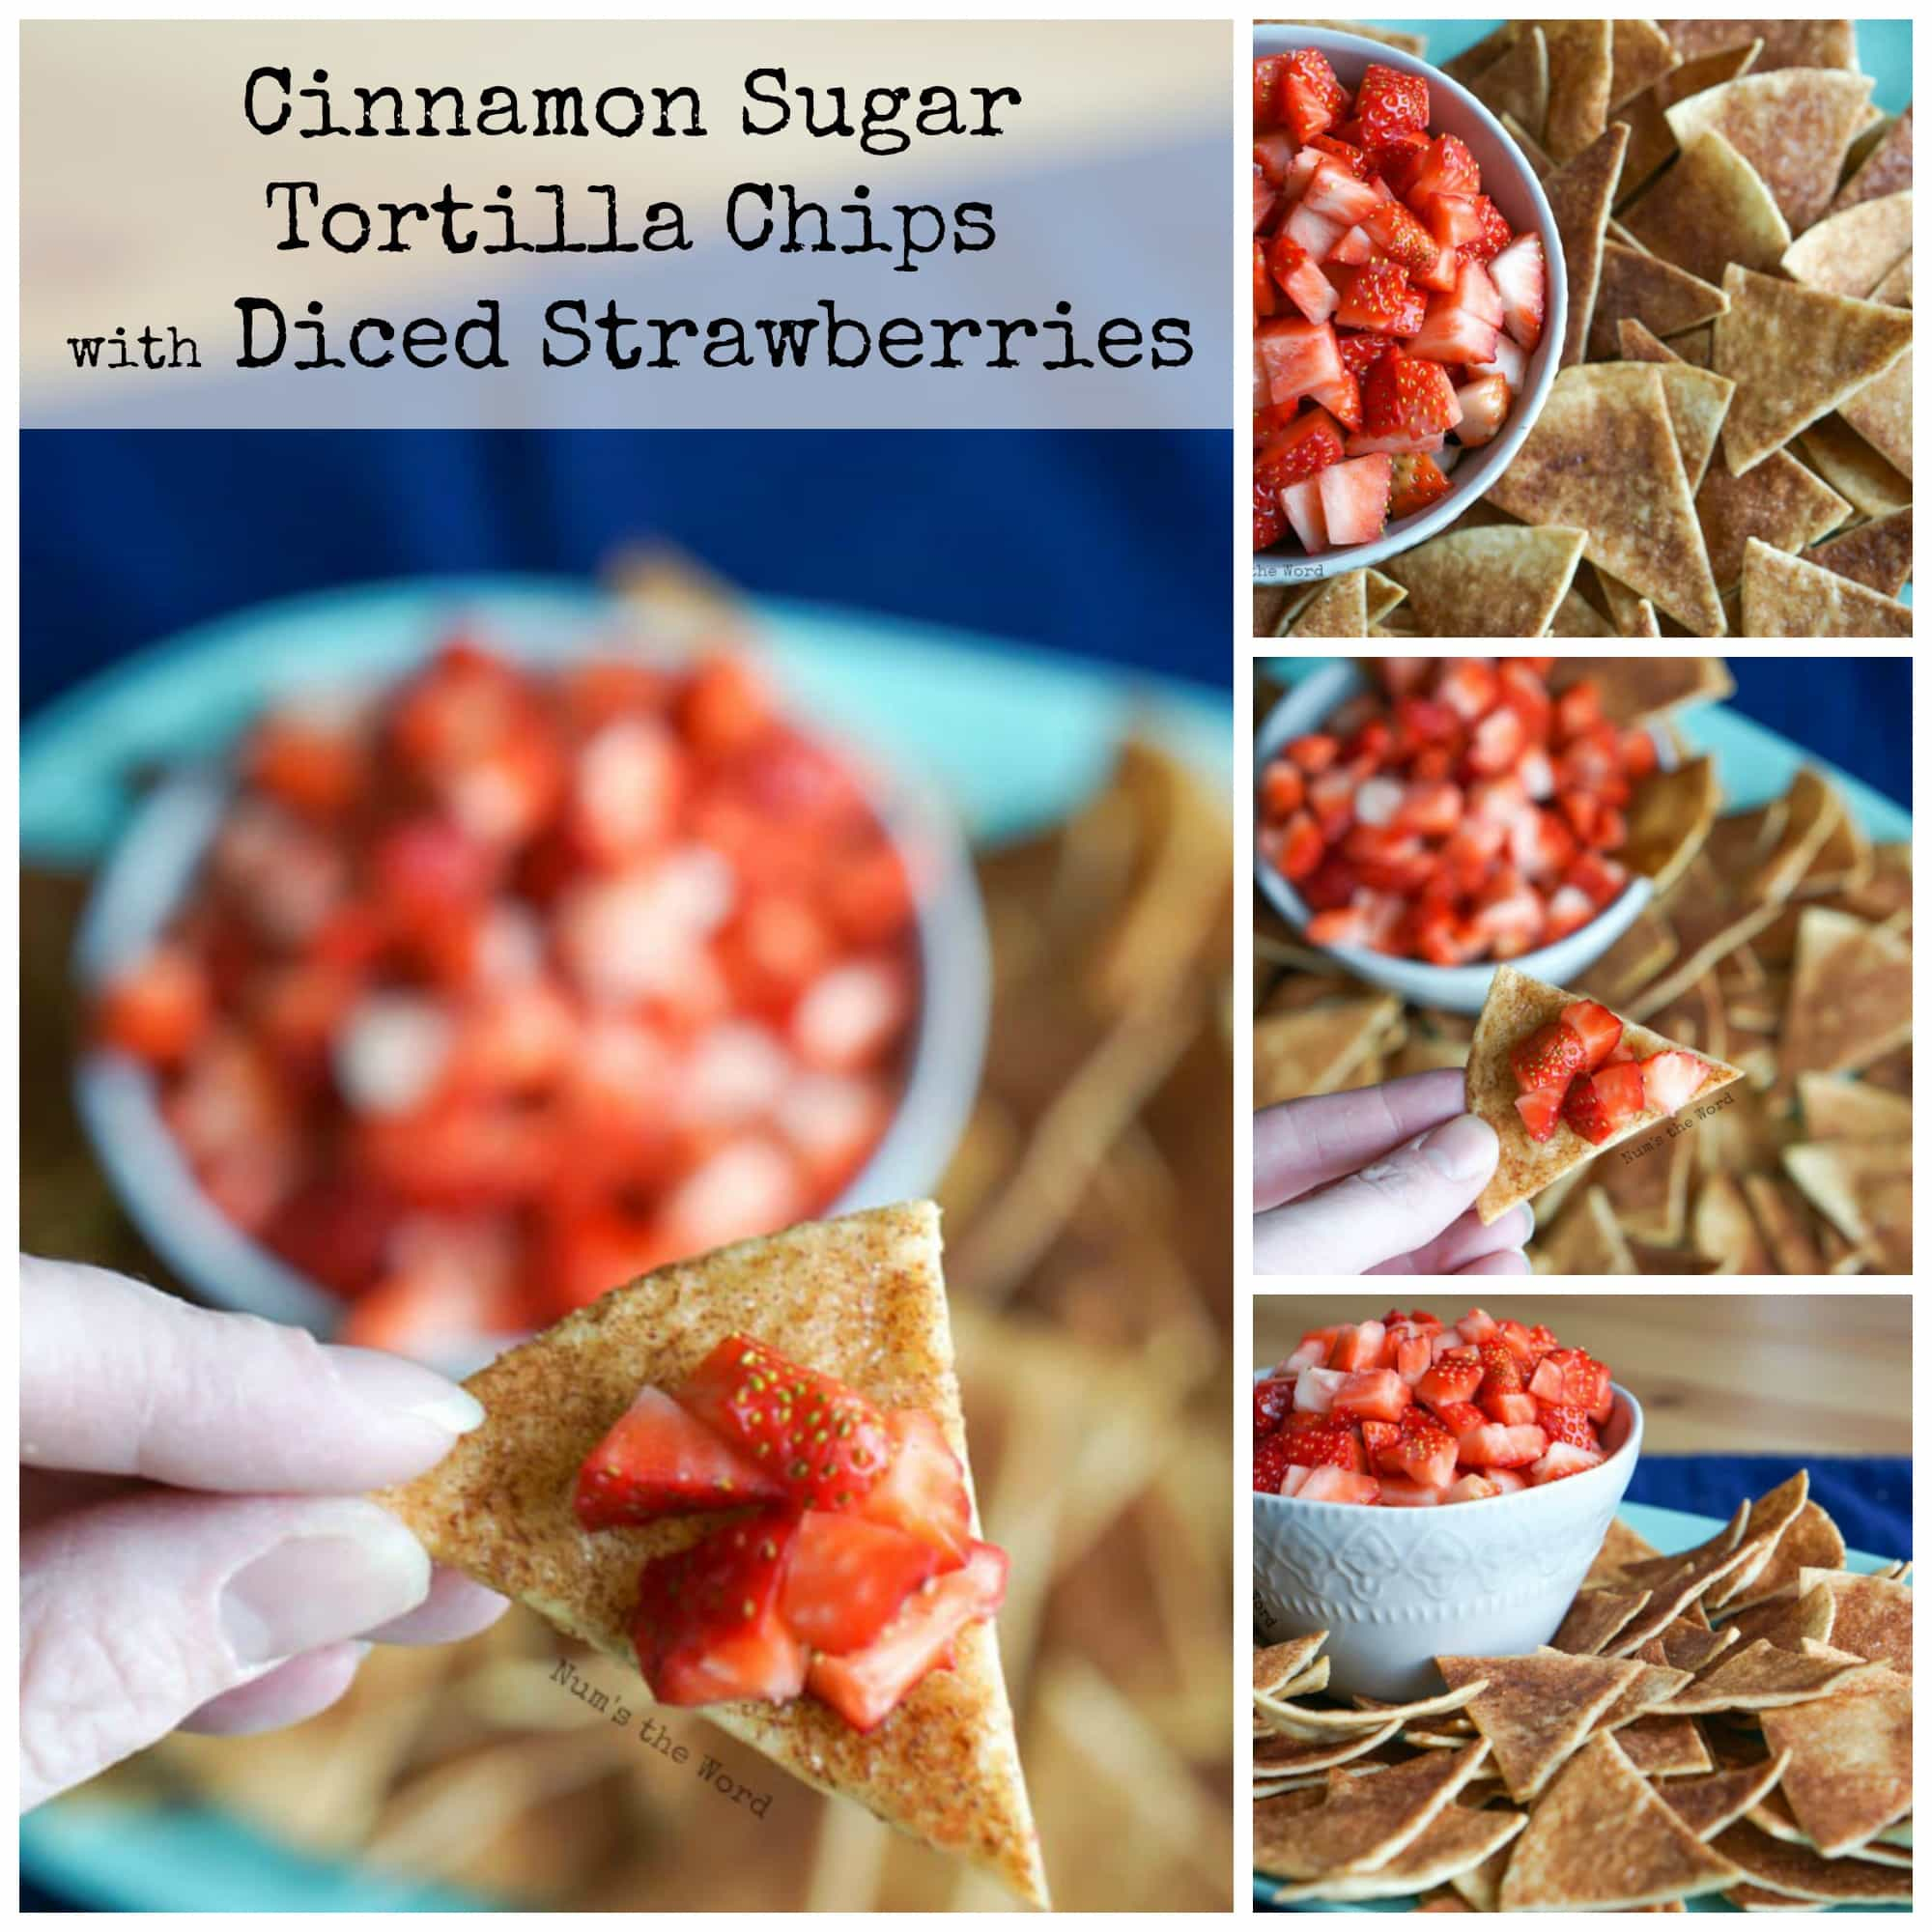 Cinnamon sugar tortilla chips with diced strawberries for What can i make with tortilla chips